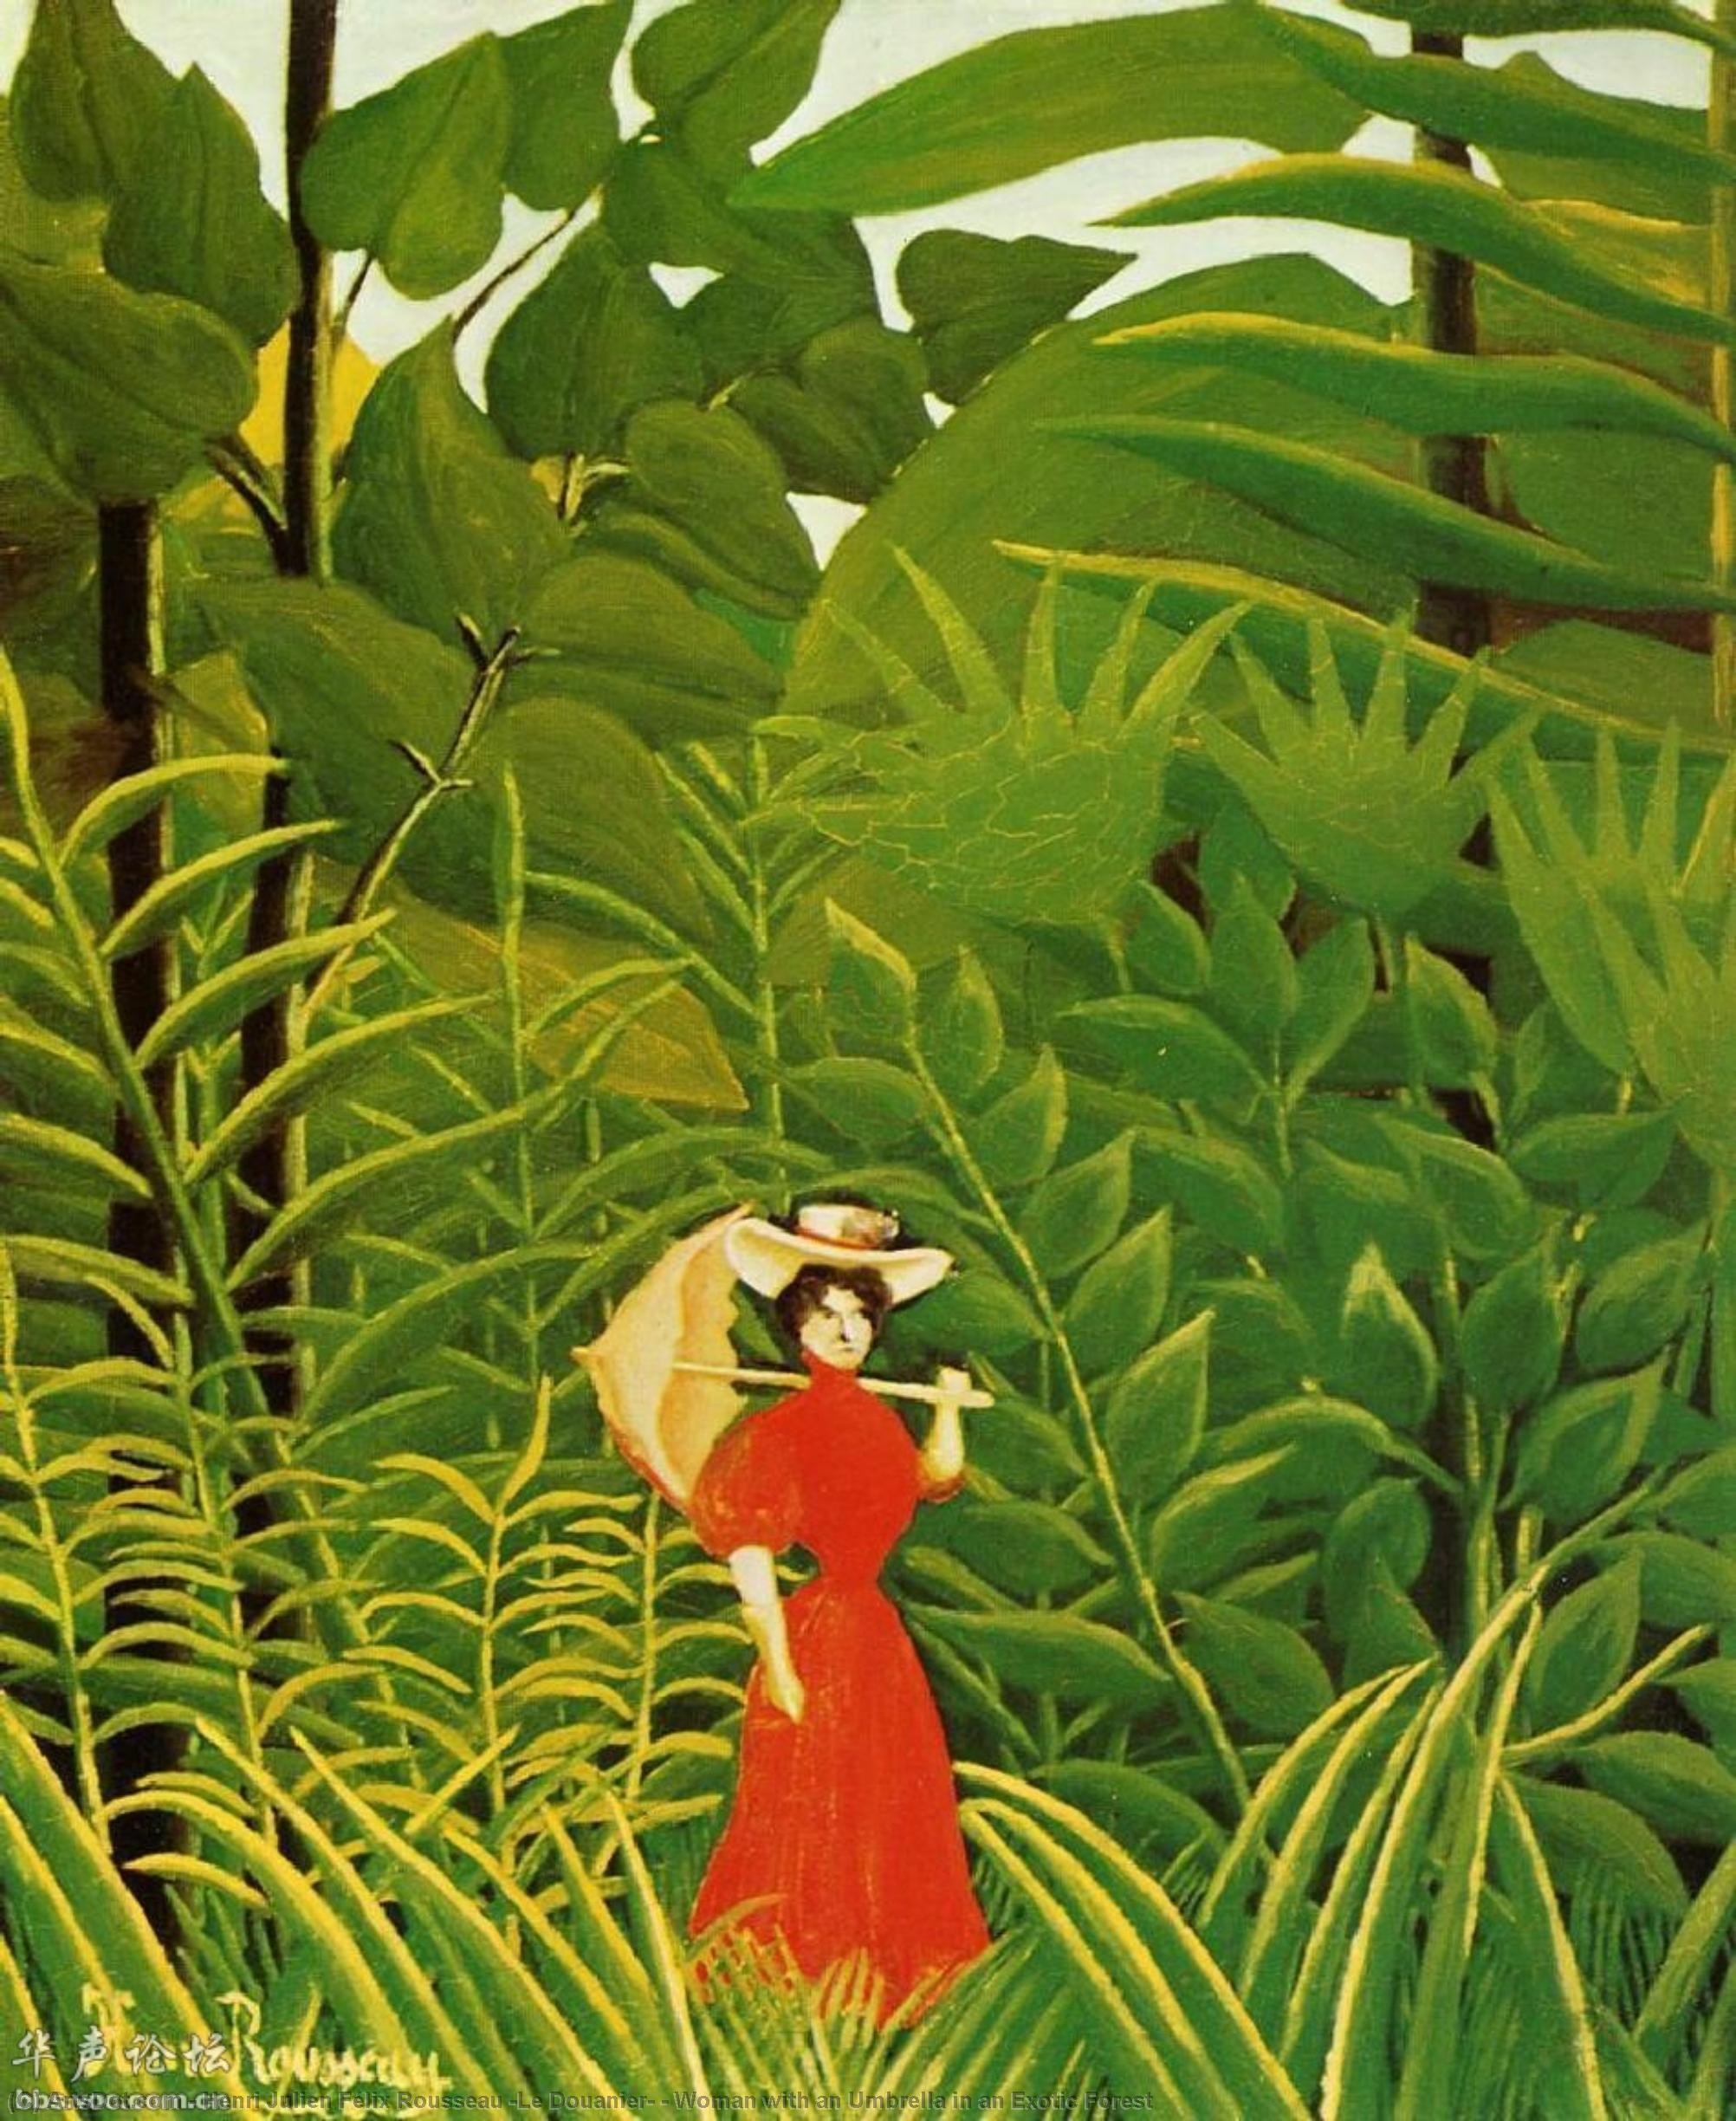 Wikioo.org - The Encyclopedia of Fine Arts - Painting, Artwork by Henri Julien Félix Rousseau (Le Douanier) - Woman with an Umbrella in an Exotic Forest